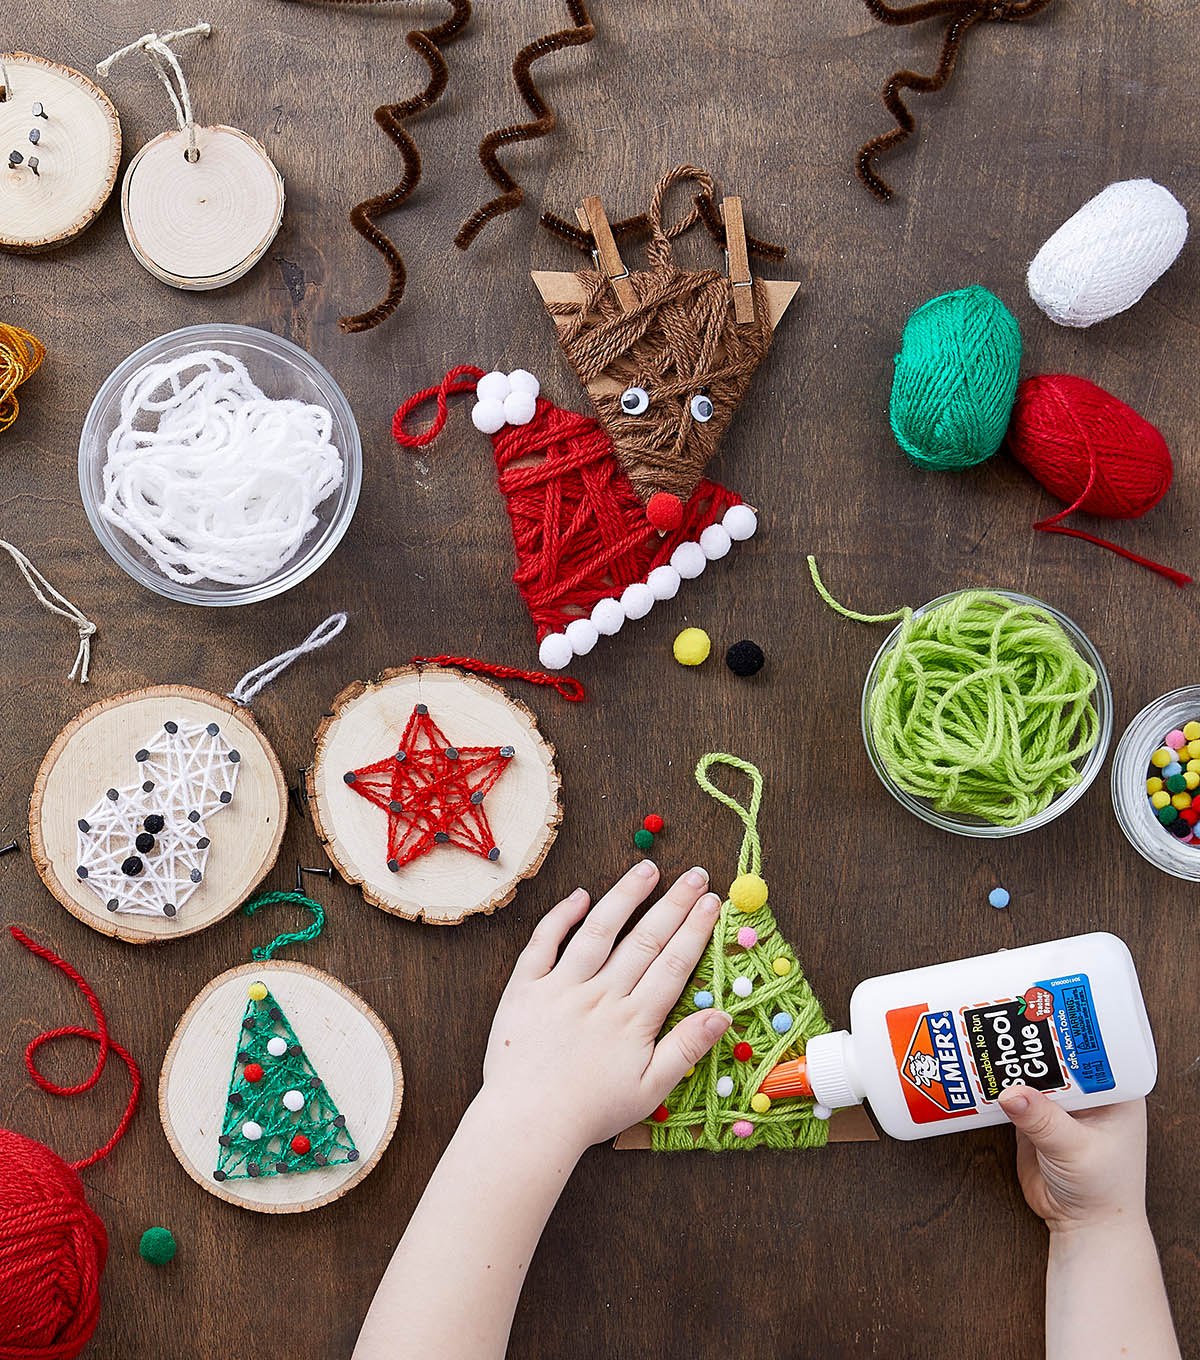 how to make yarn wrapped holiday ornaments - Joann Fabrics Christmas Decorations